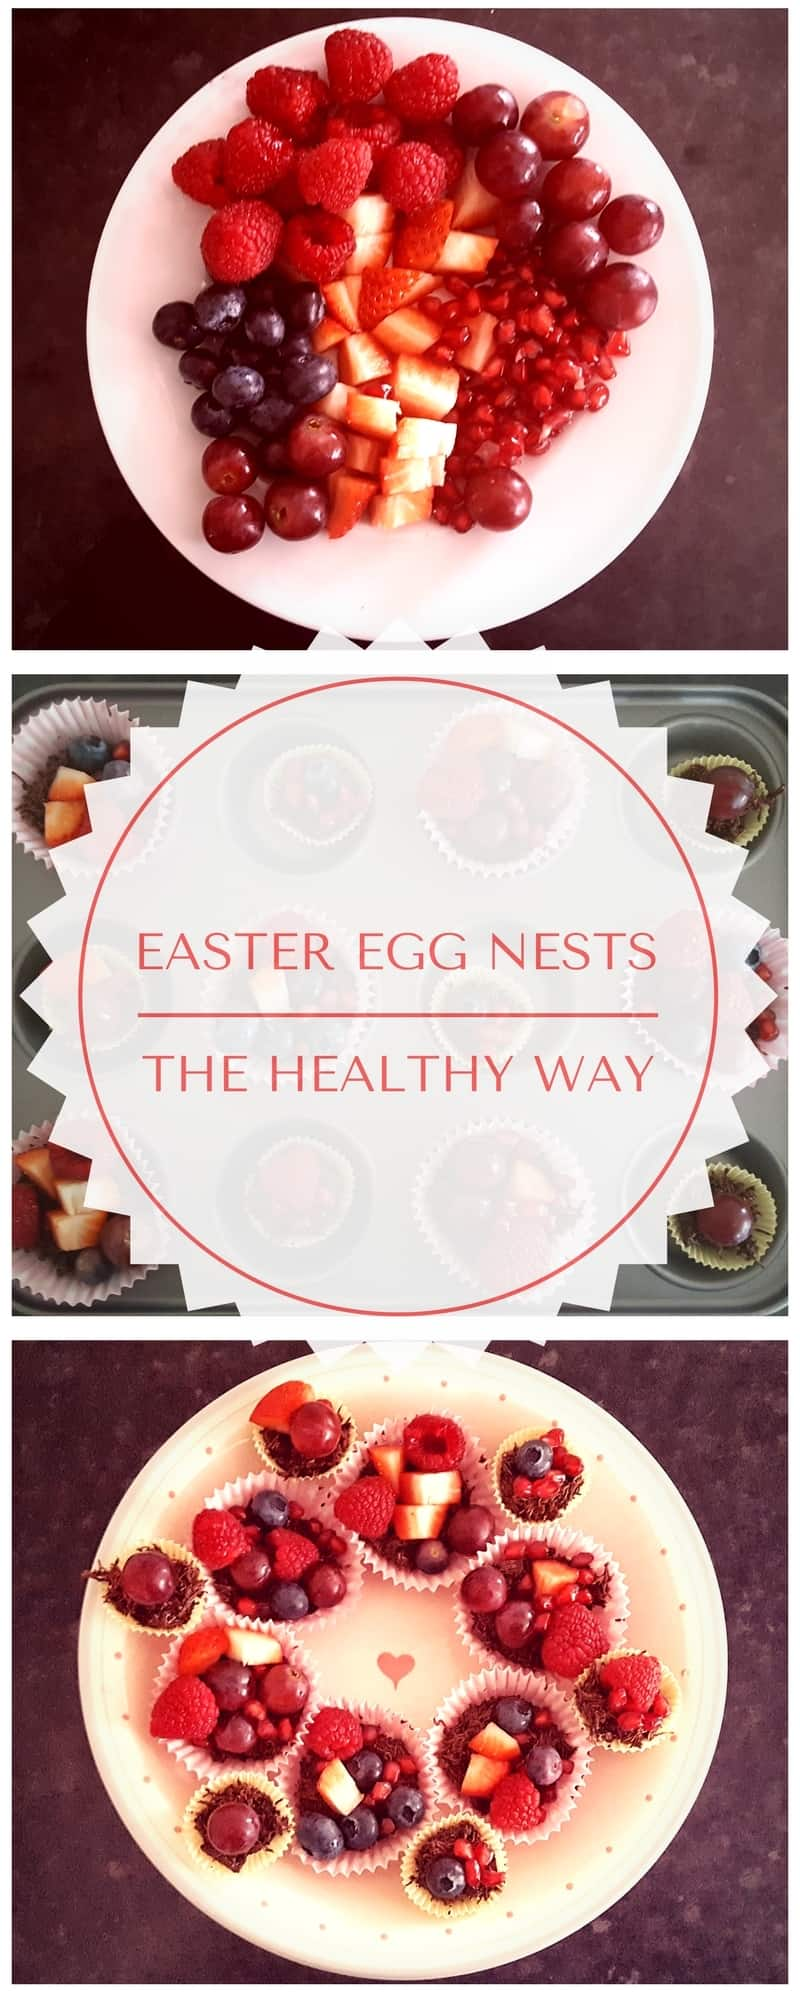 How to make healthy Easter egg nests from scratch. You even make the chocolate yourself - and it's good for you! We used fruit instead of chocolate Easter eggs to top the nests. This is a really tasty treat that is easy to make with toddlers.